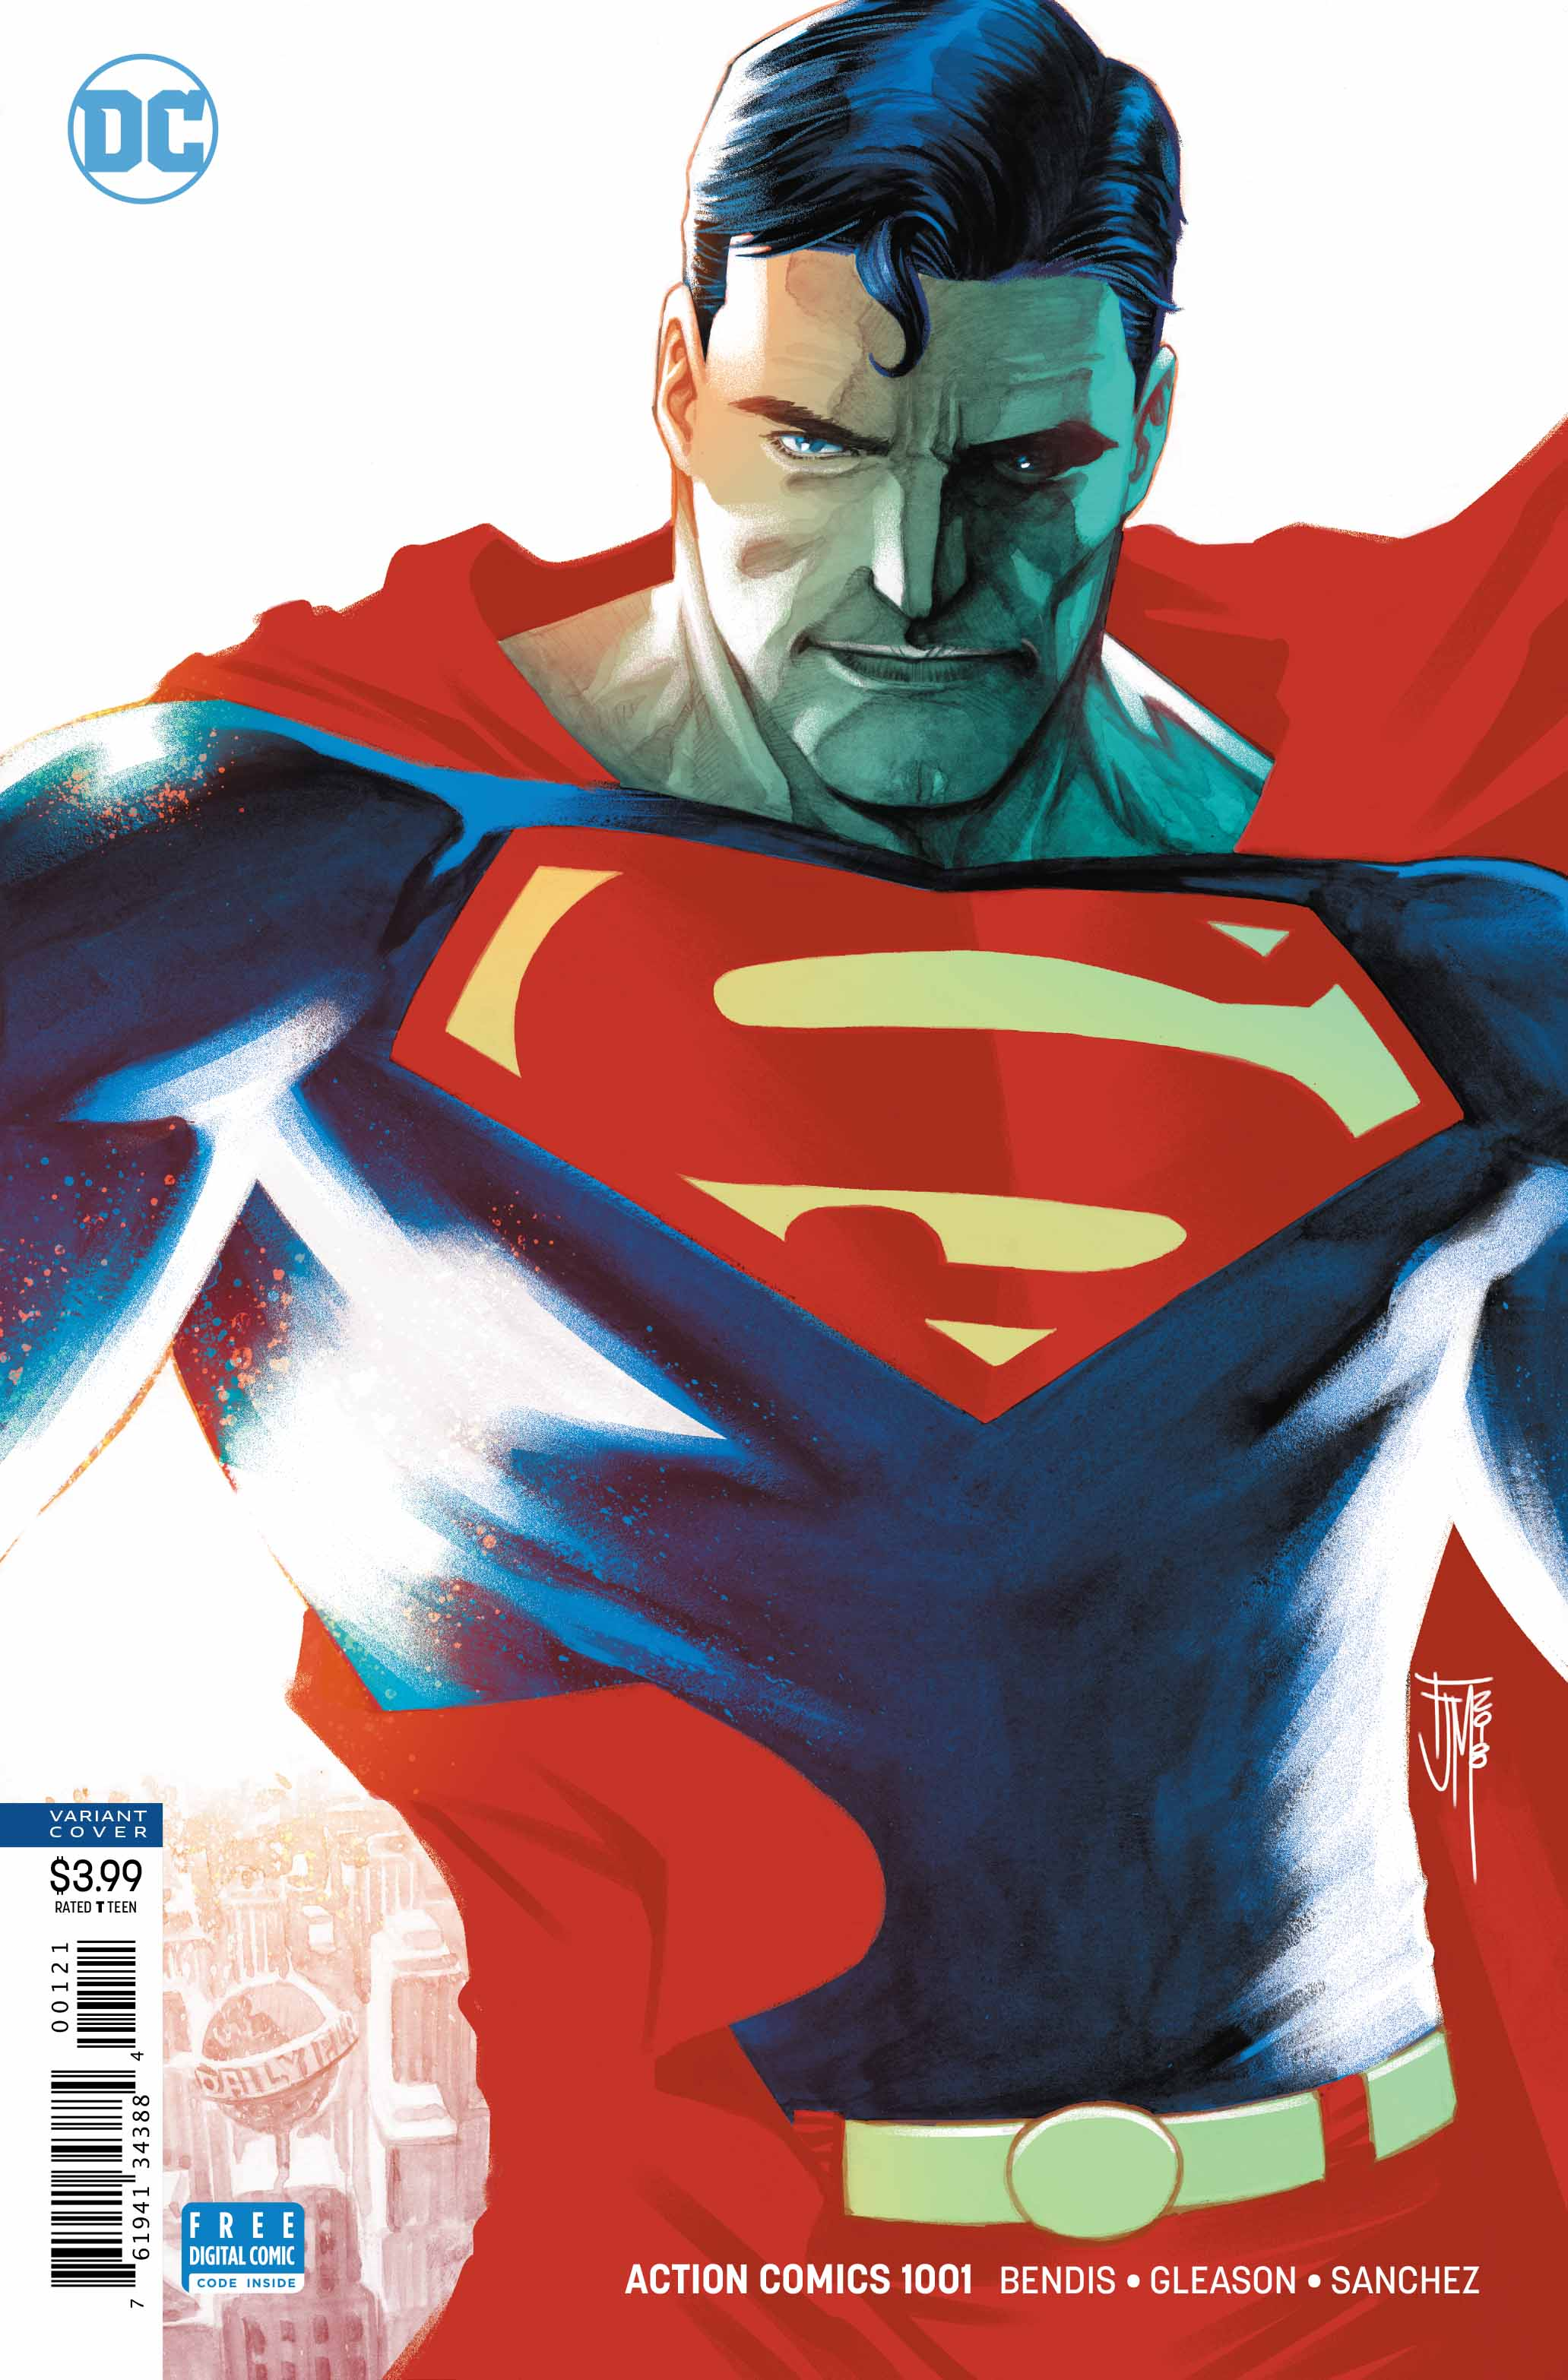 Action Comics #1001 Review